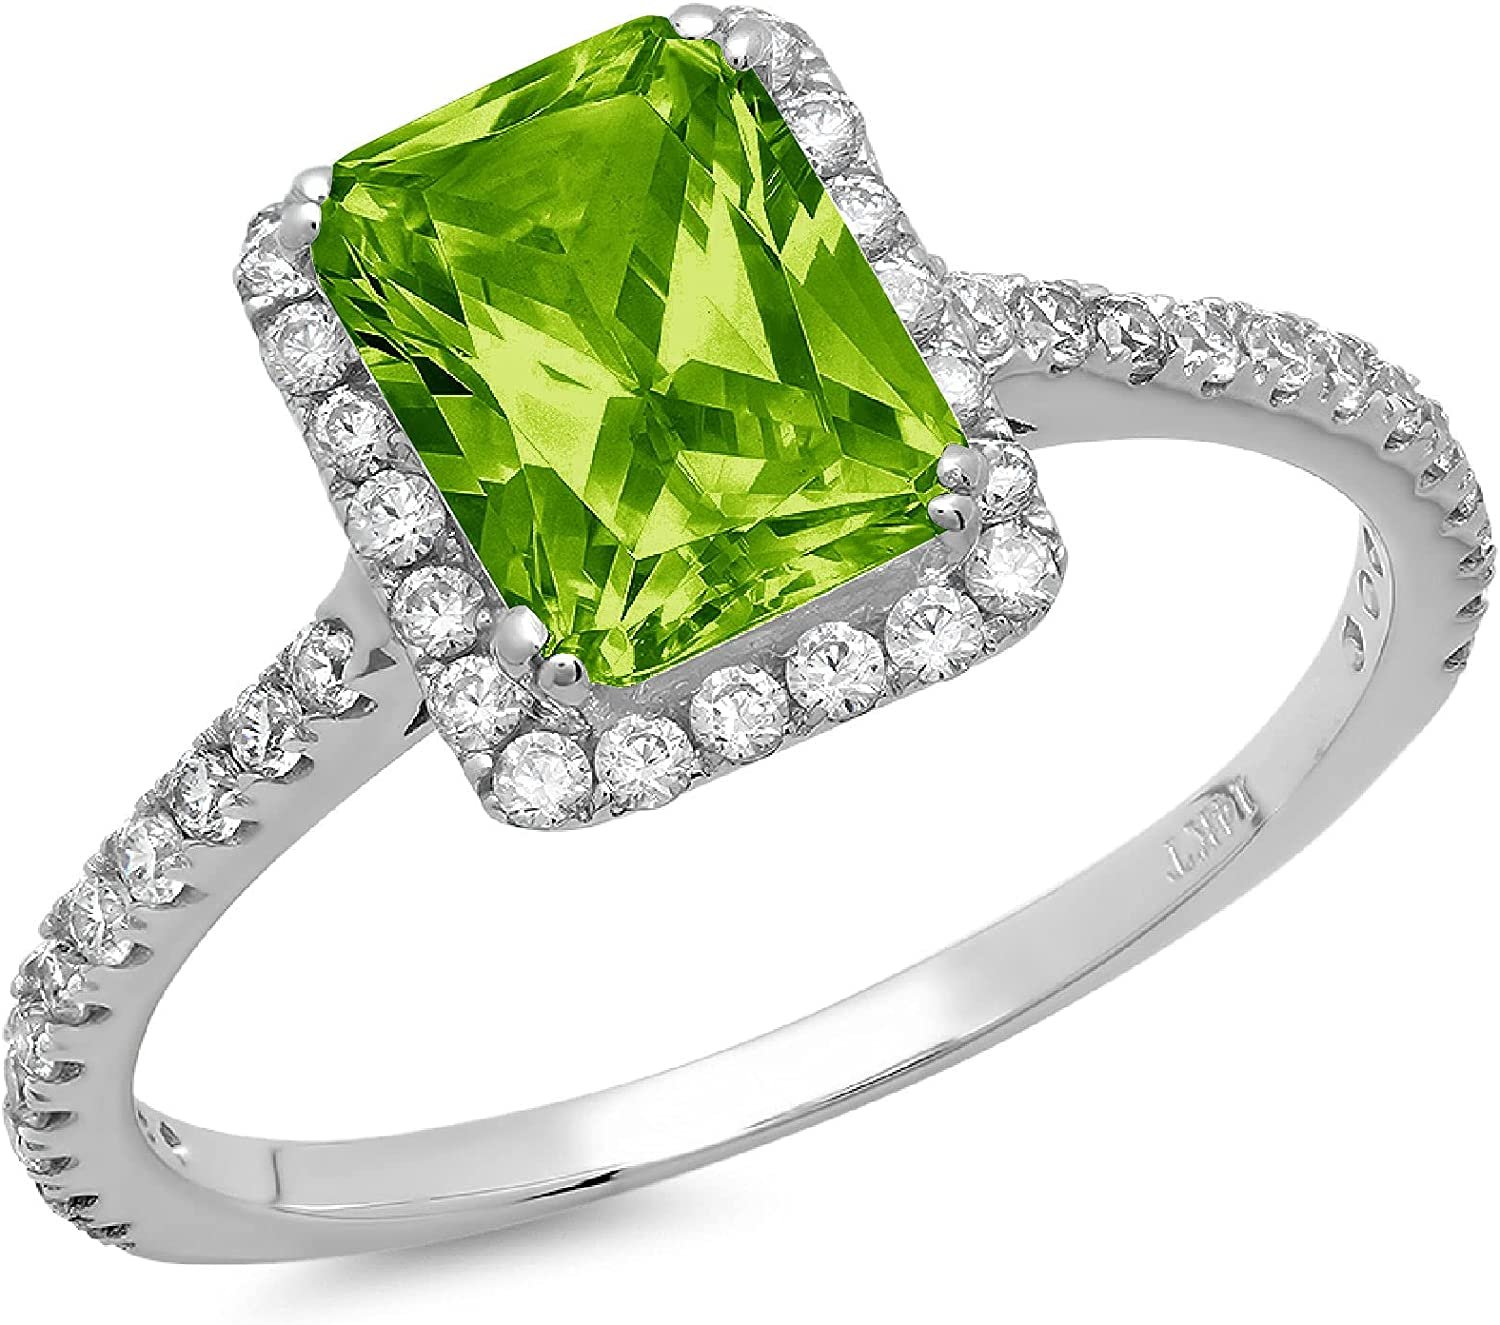 Clara Pucci 1.95 Brilliant Emerald Cut Solitaire Accent Stunning Genuine Flawless Natural Green Peridot Gem Designer Modern Ring Solid 18K White Gold